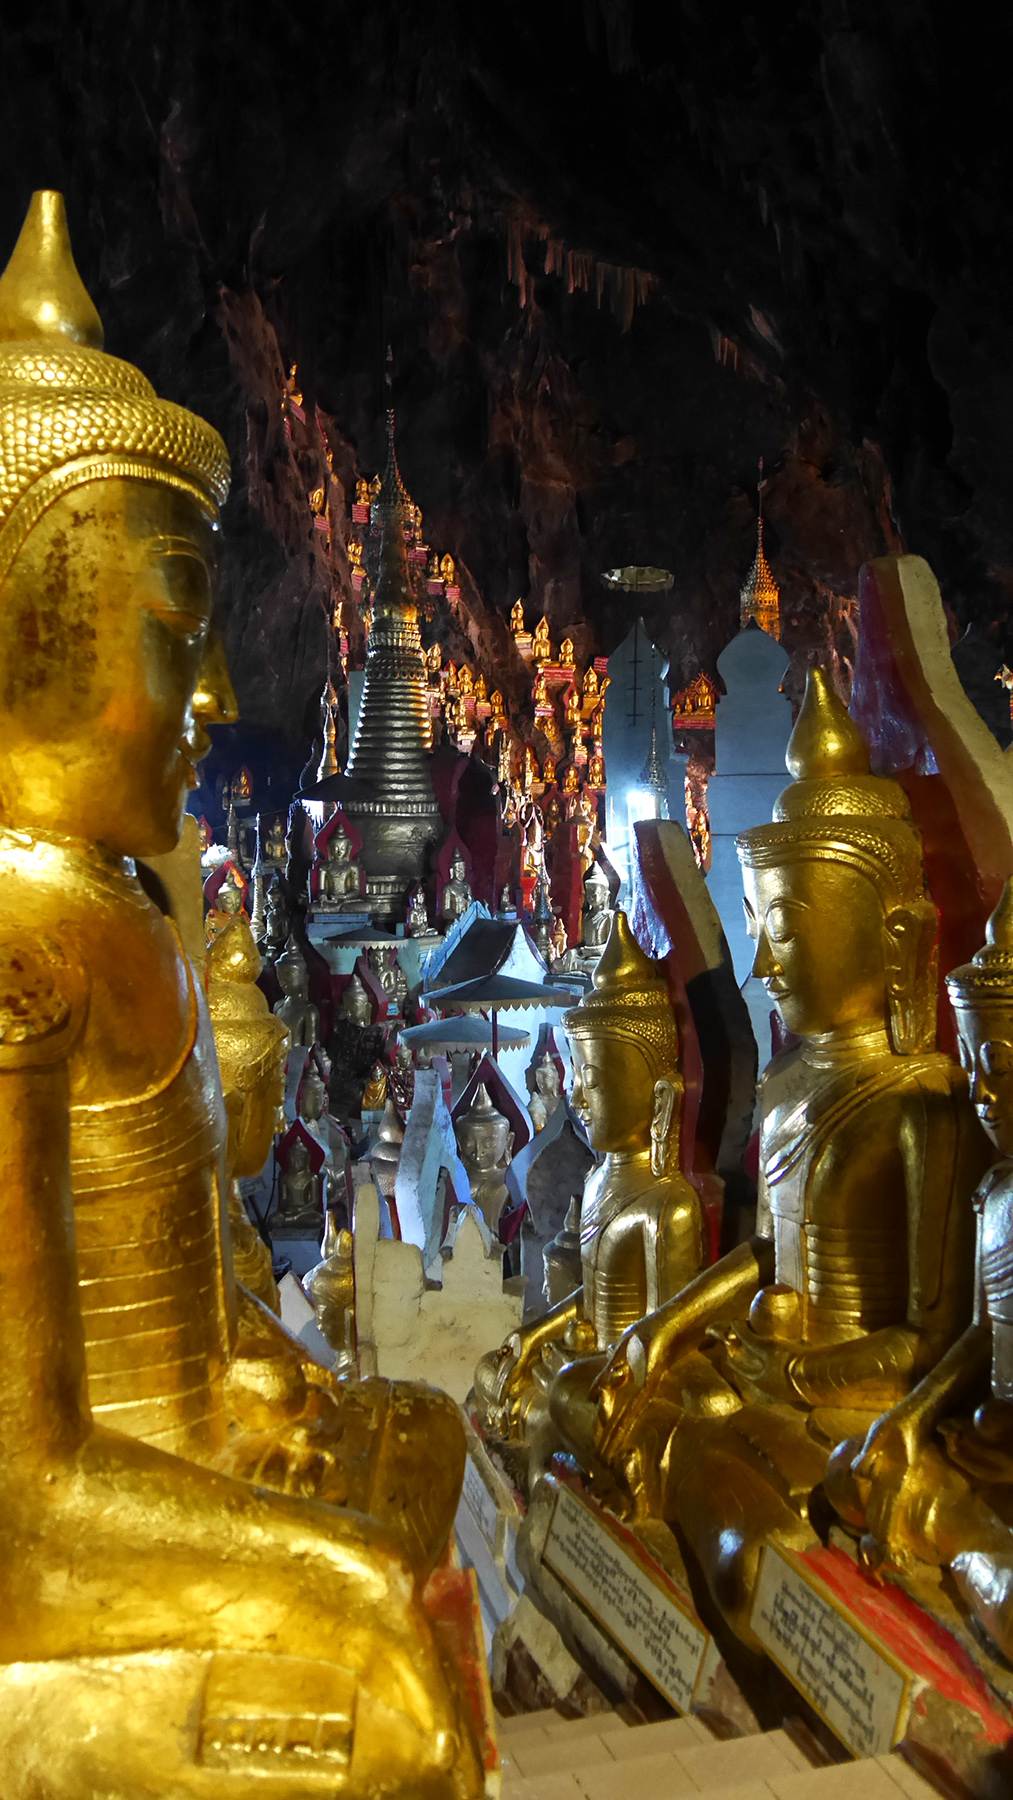 Thousands of Buddha statues inside the Pindaya Cave